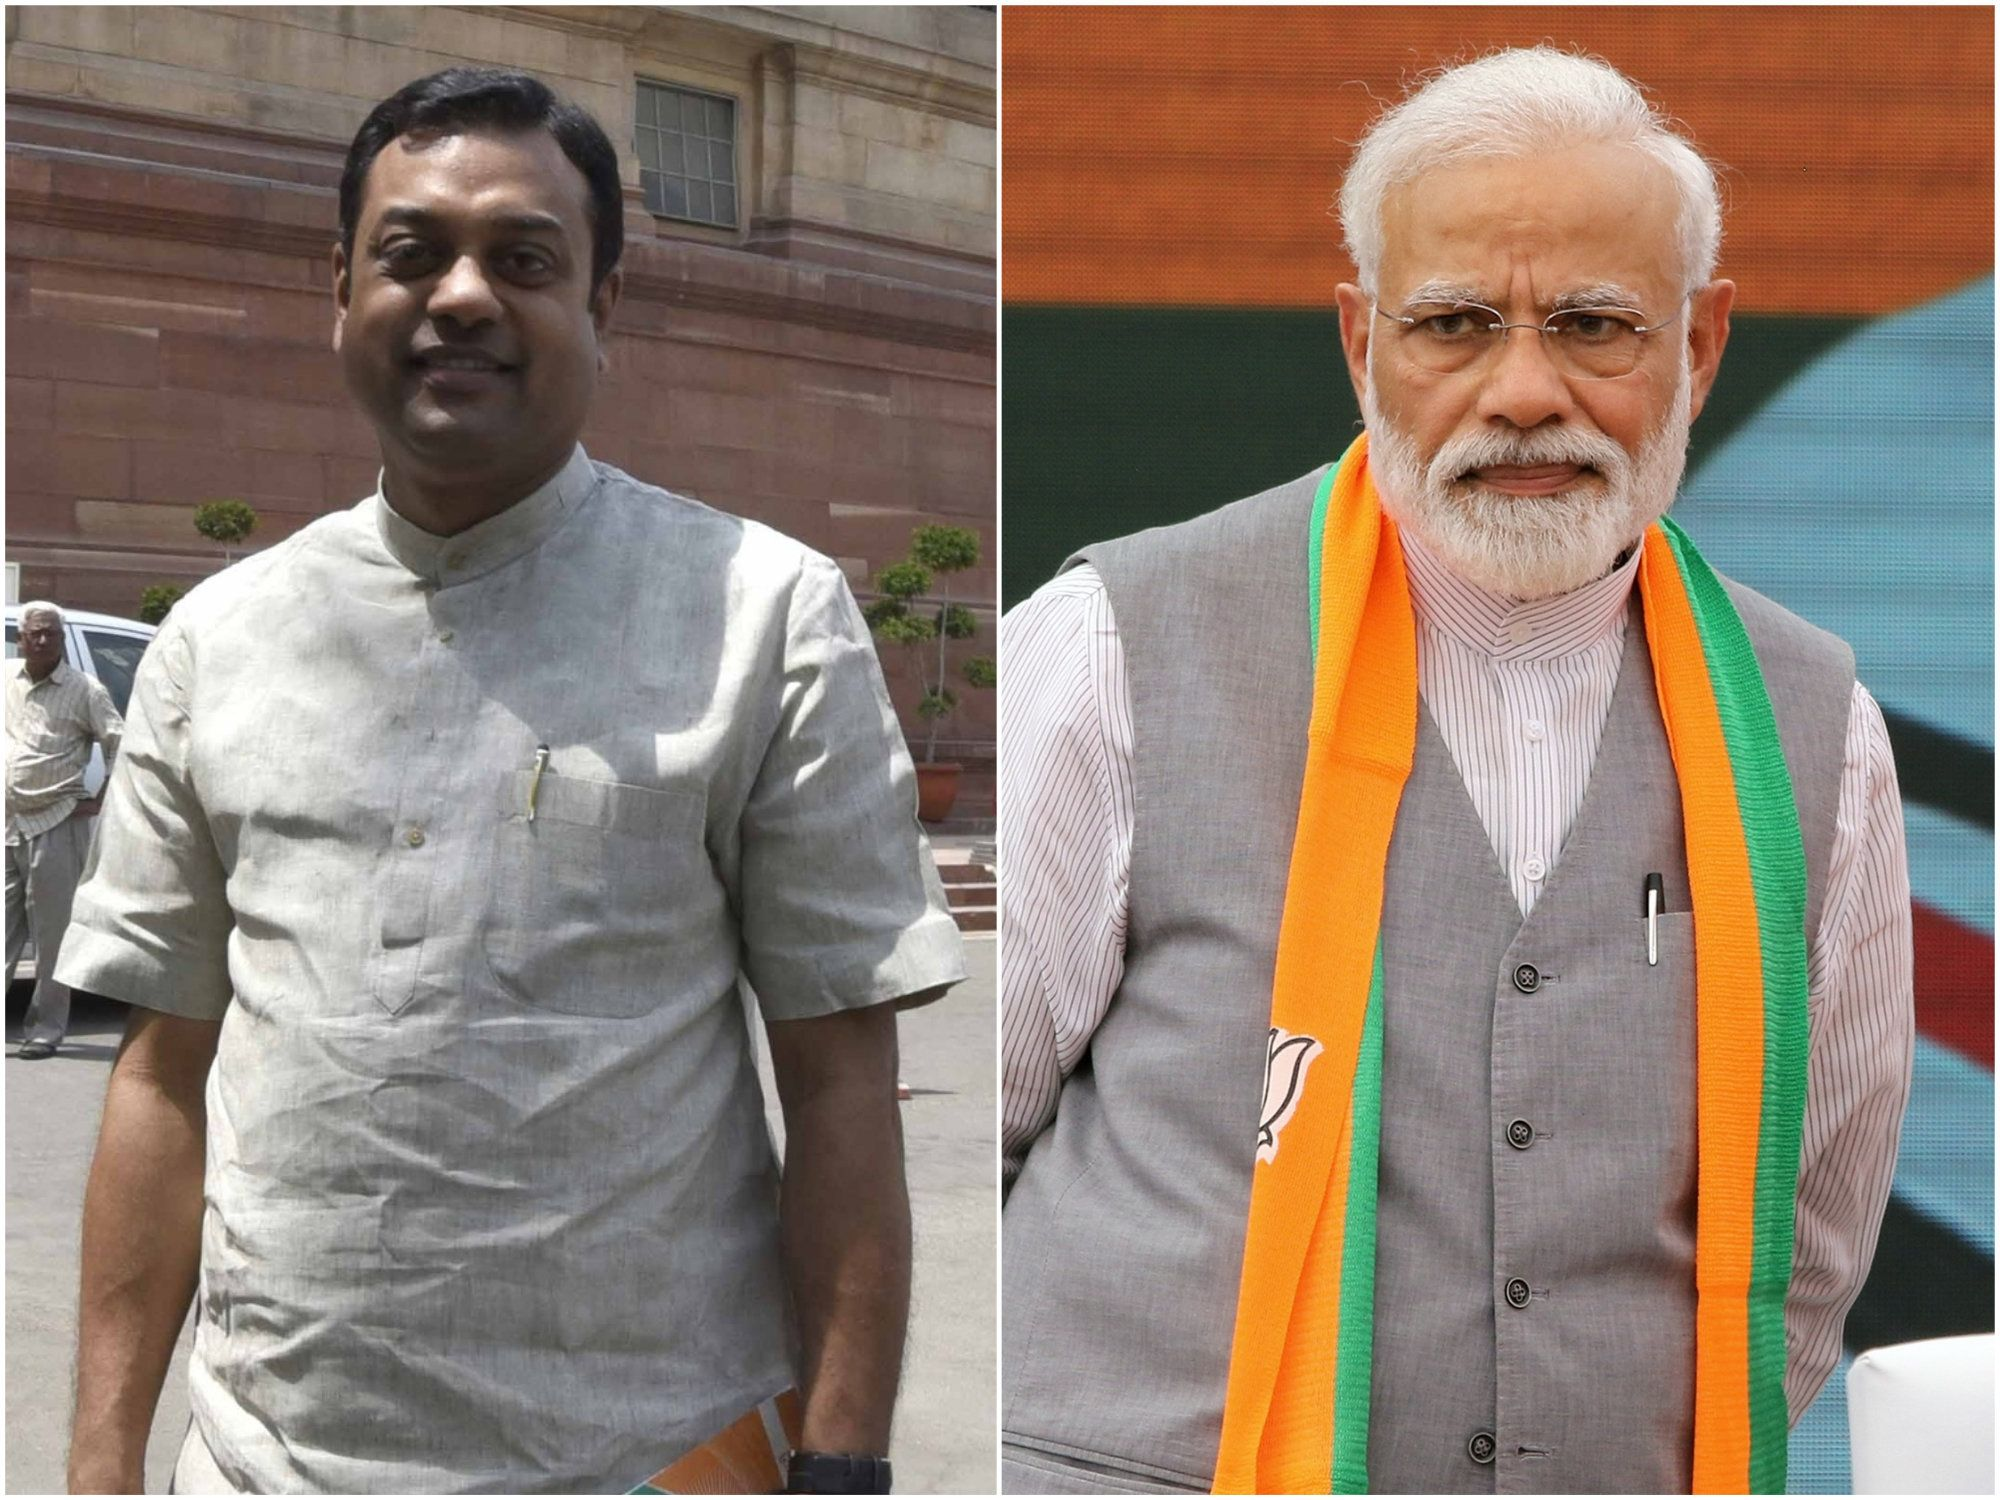 Sambit Patra Called Modi 'Supreme Leader' And Everyone's Stress Levels Are Through The